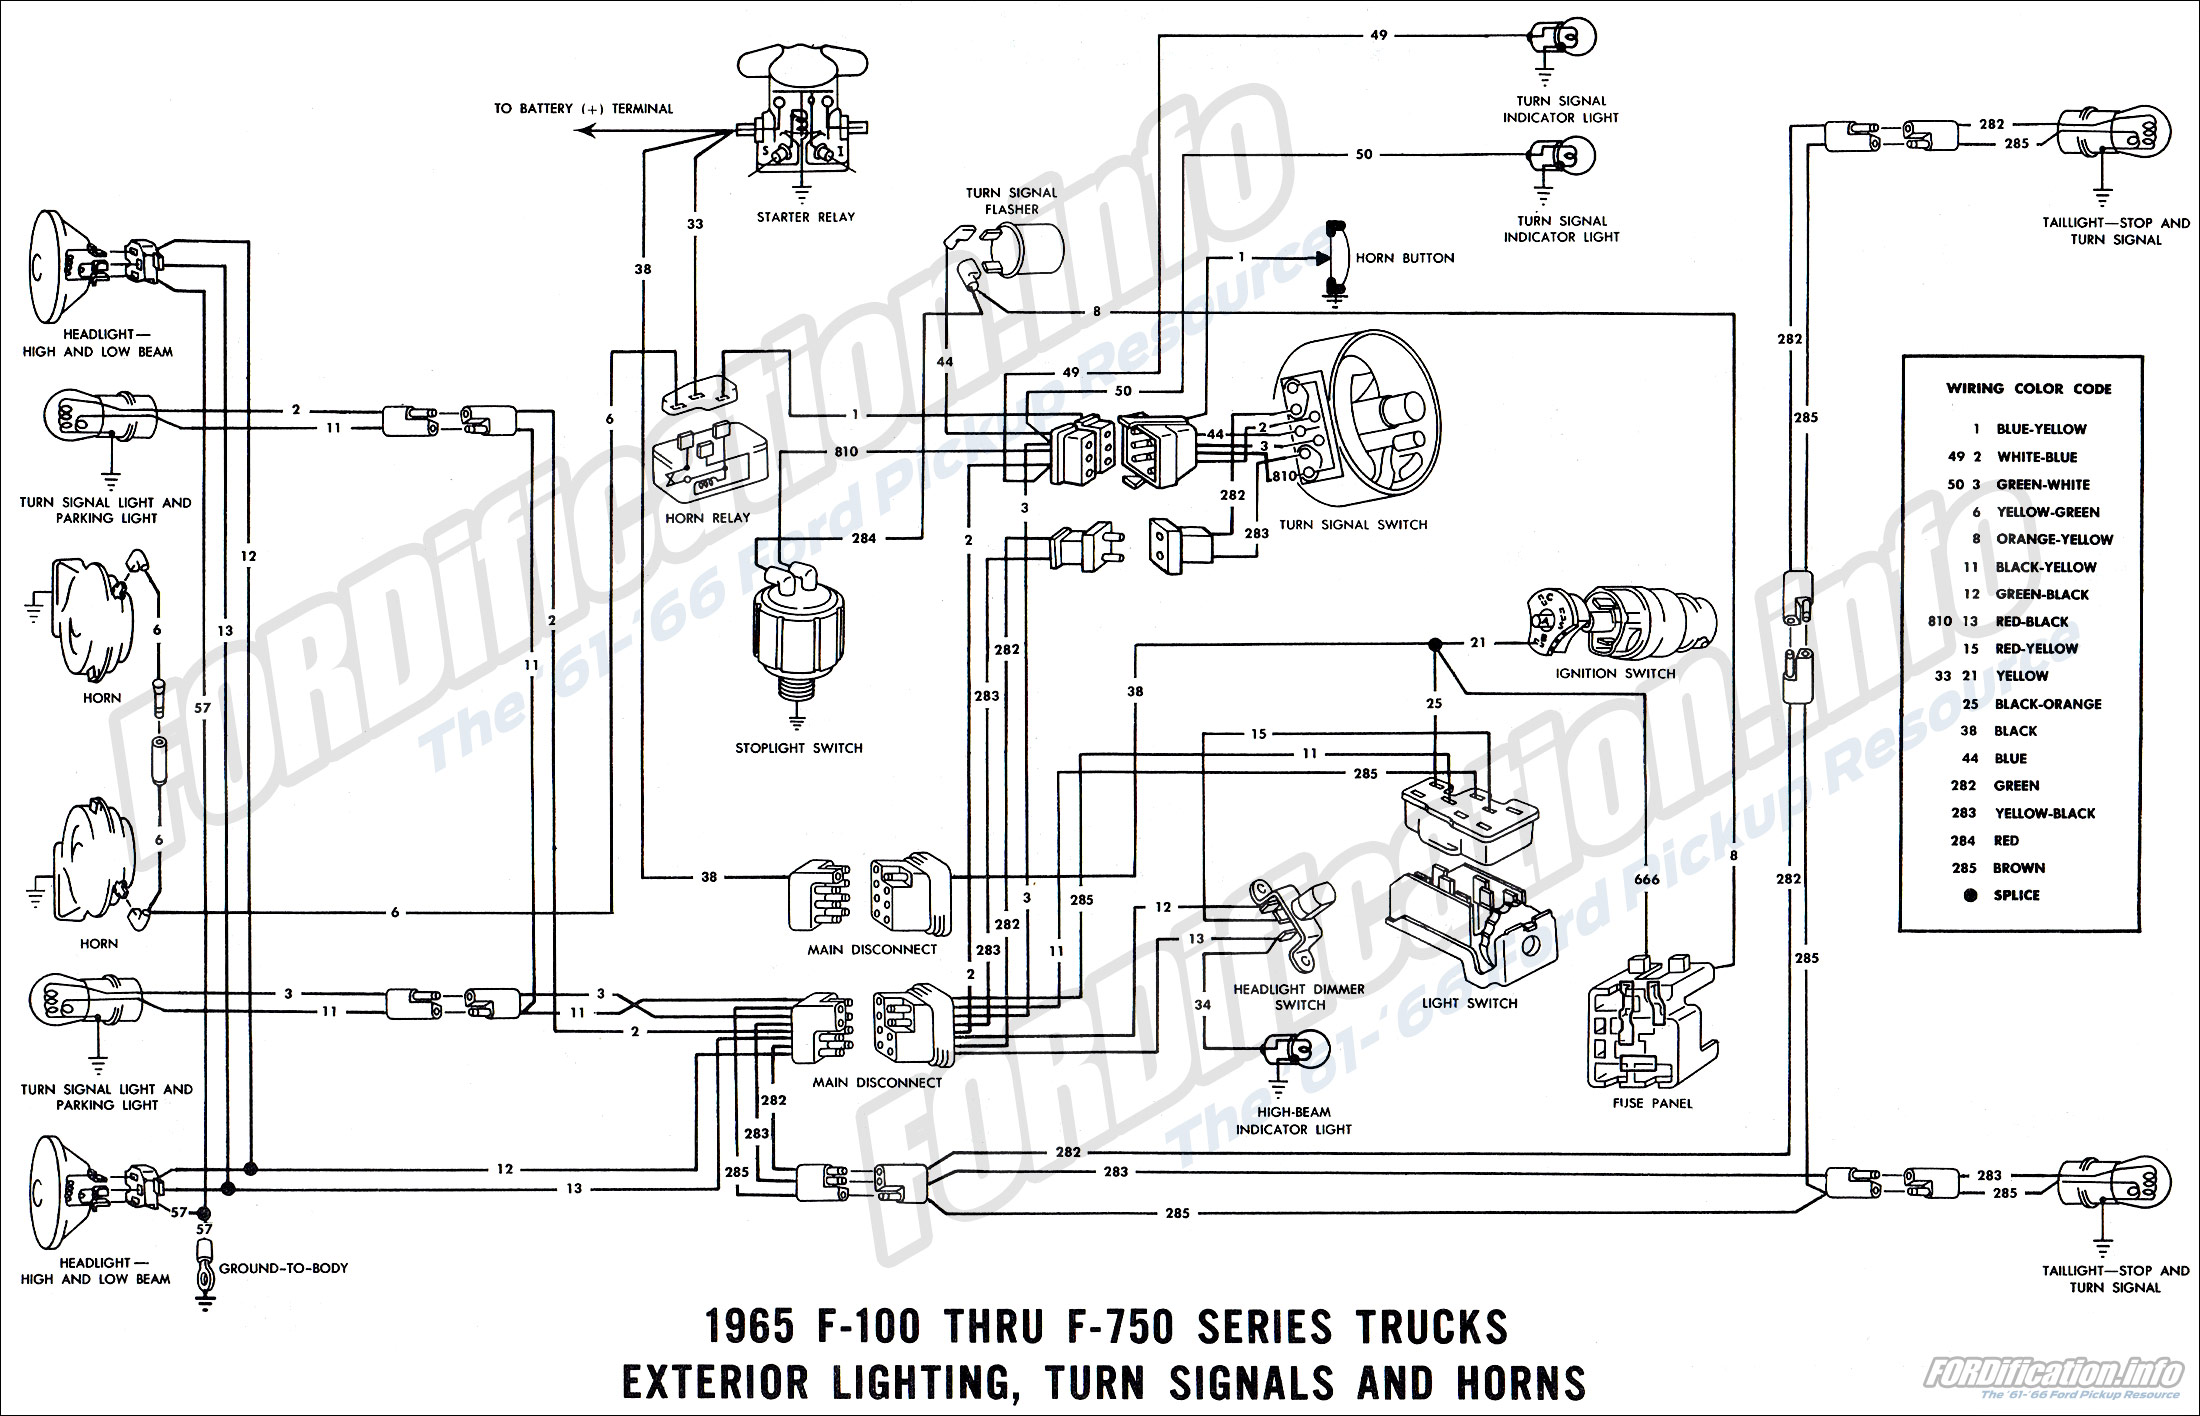 1961 corvair wiring diagram wiring diagrams best 1962 ford truck wiring diagram wiring diagrams schematic 1961 corvair rampside wiring diagram 1961 corvair wiring diagram